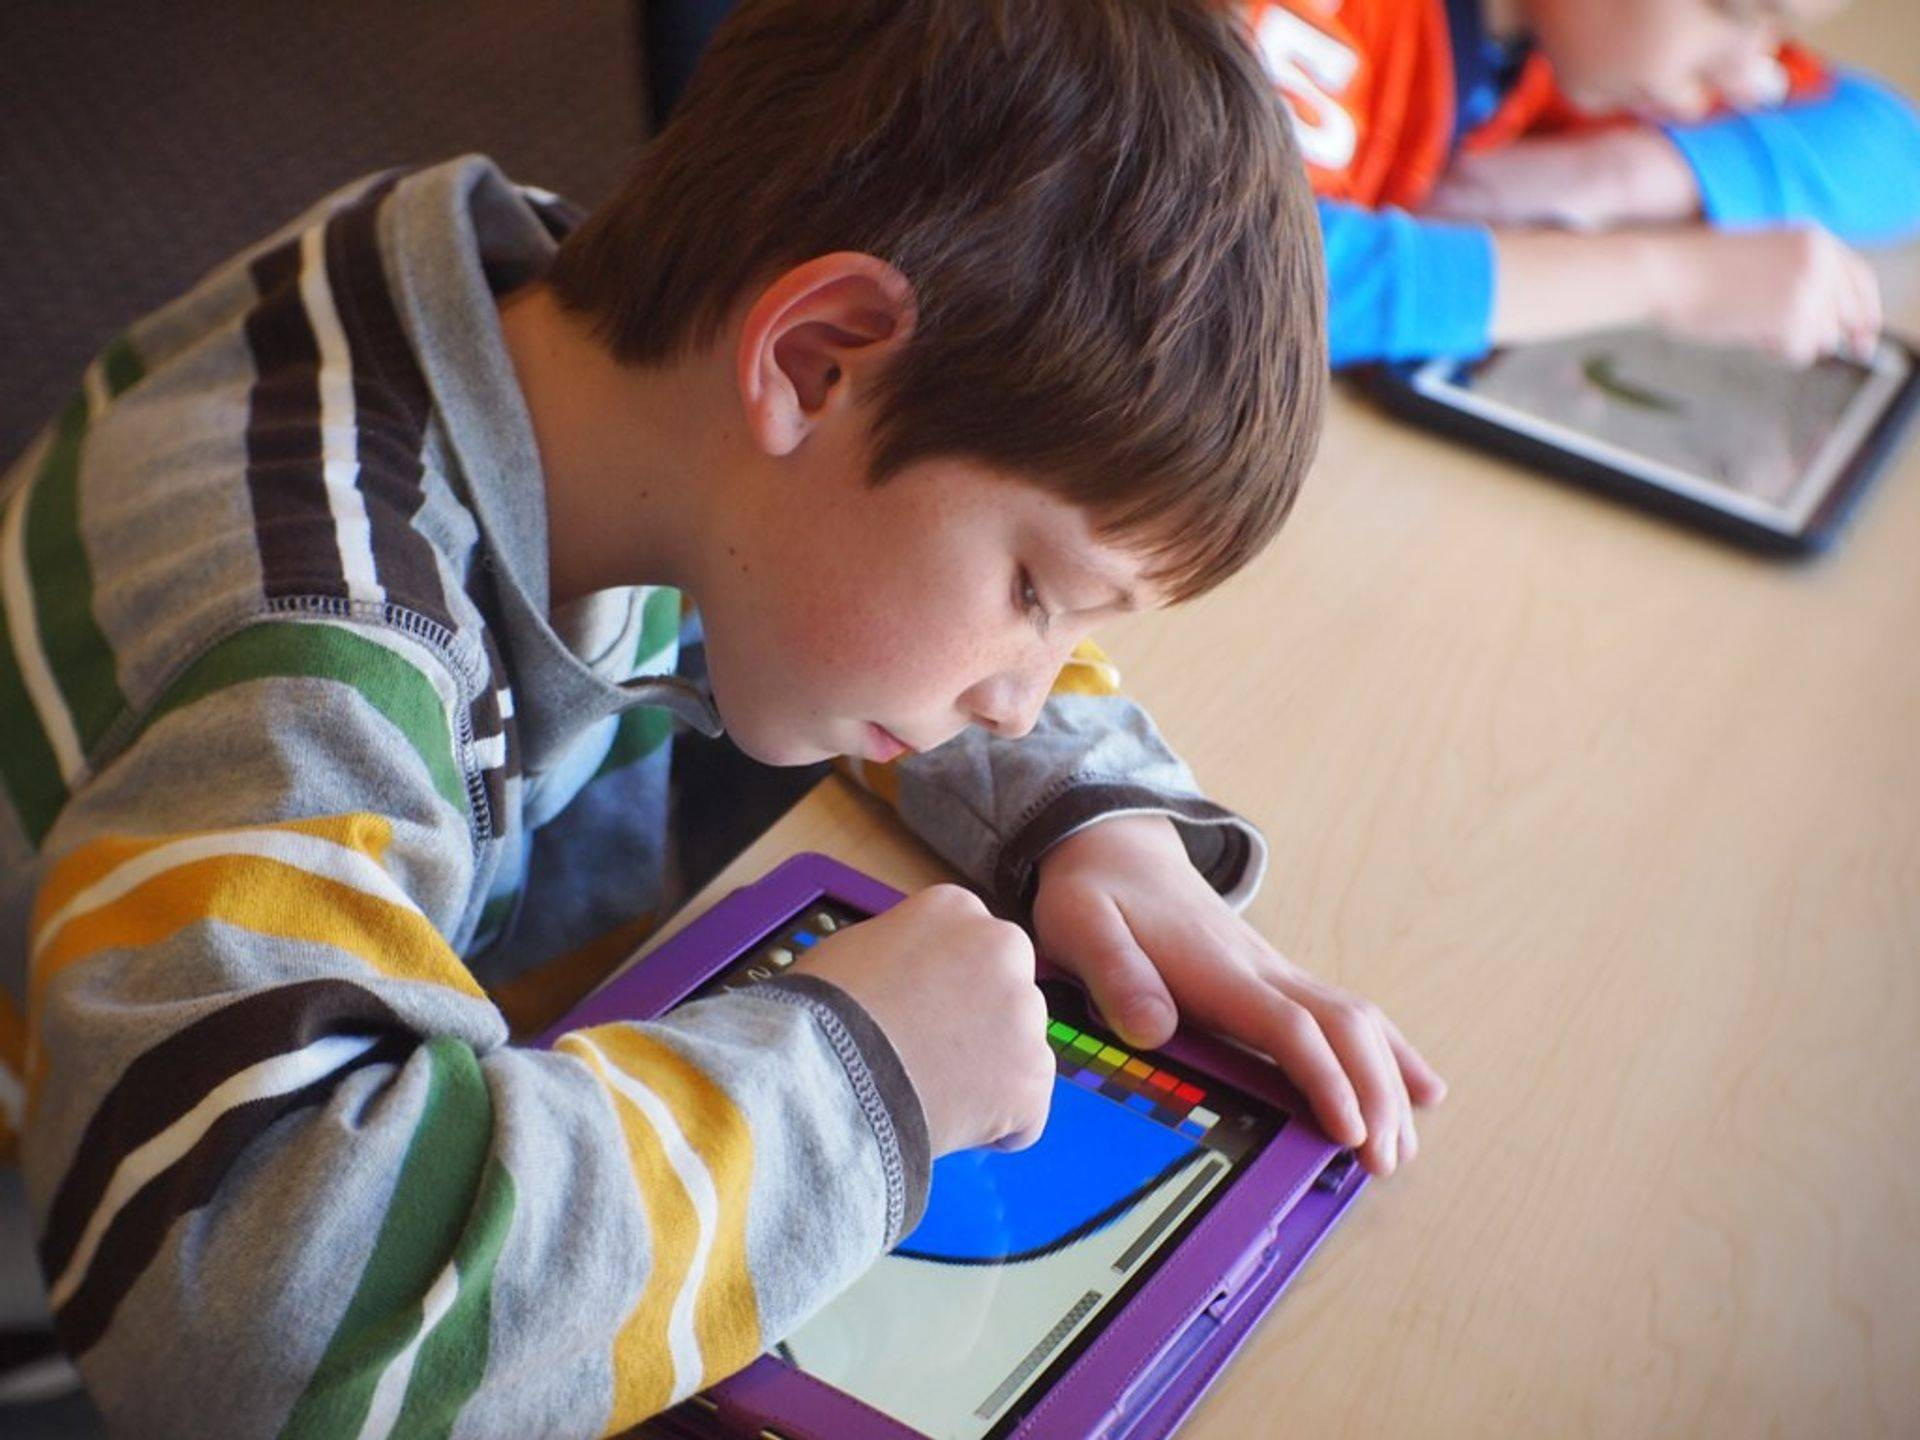 Technology helps with learning